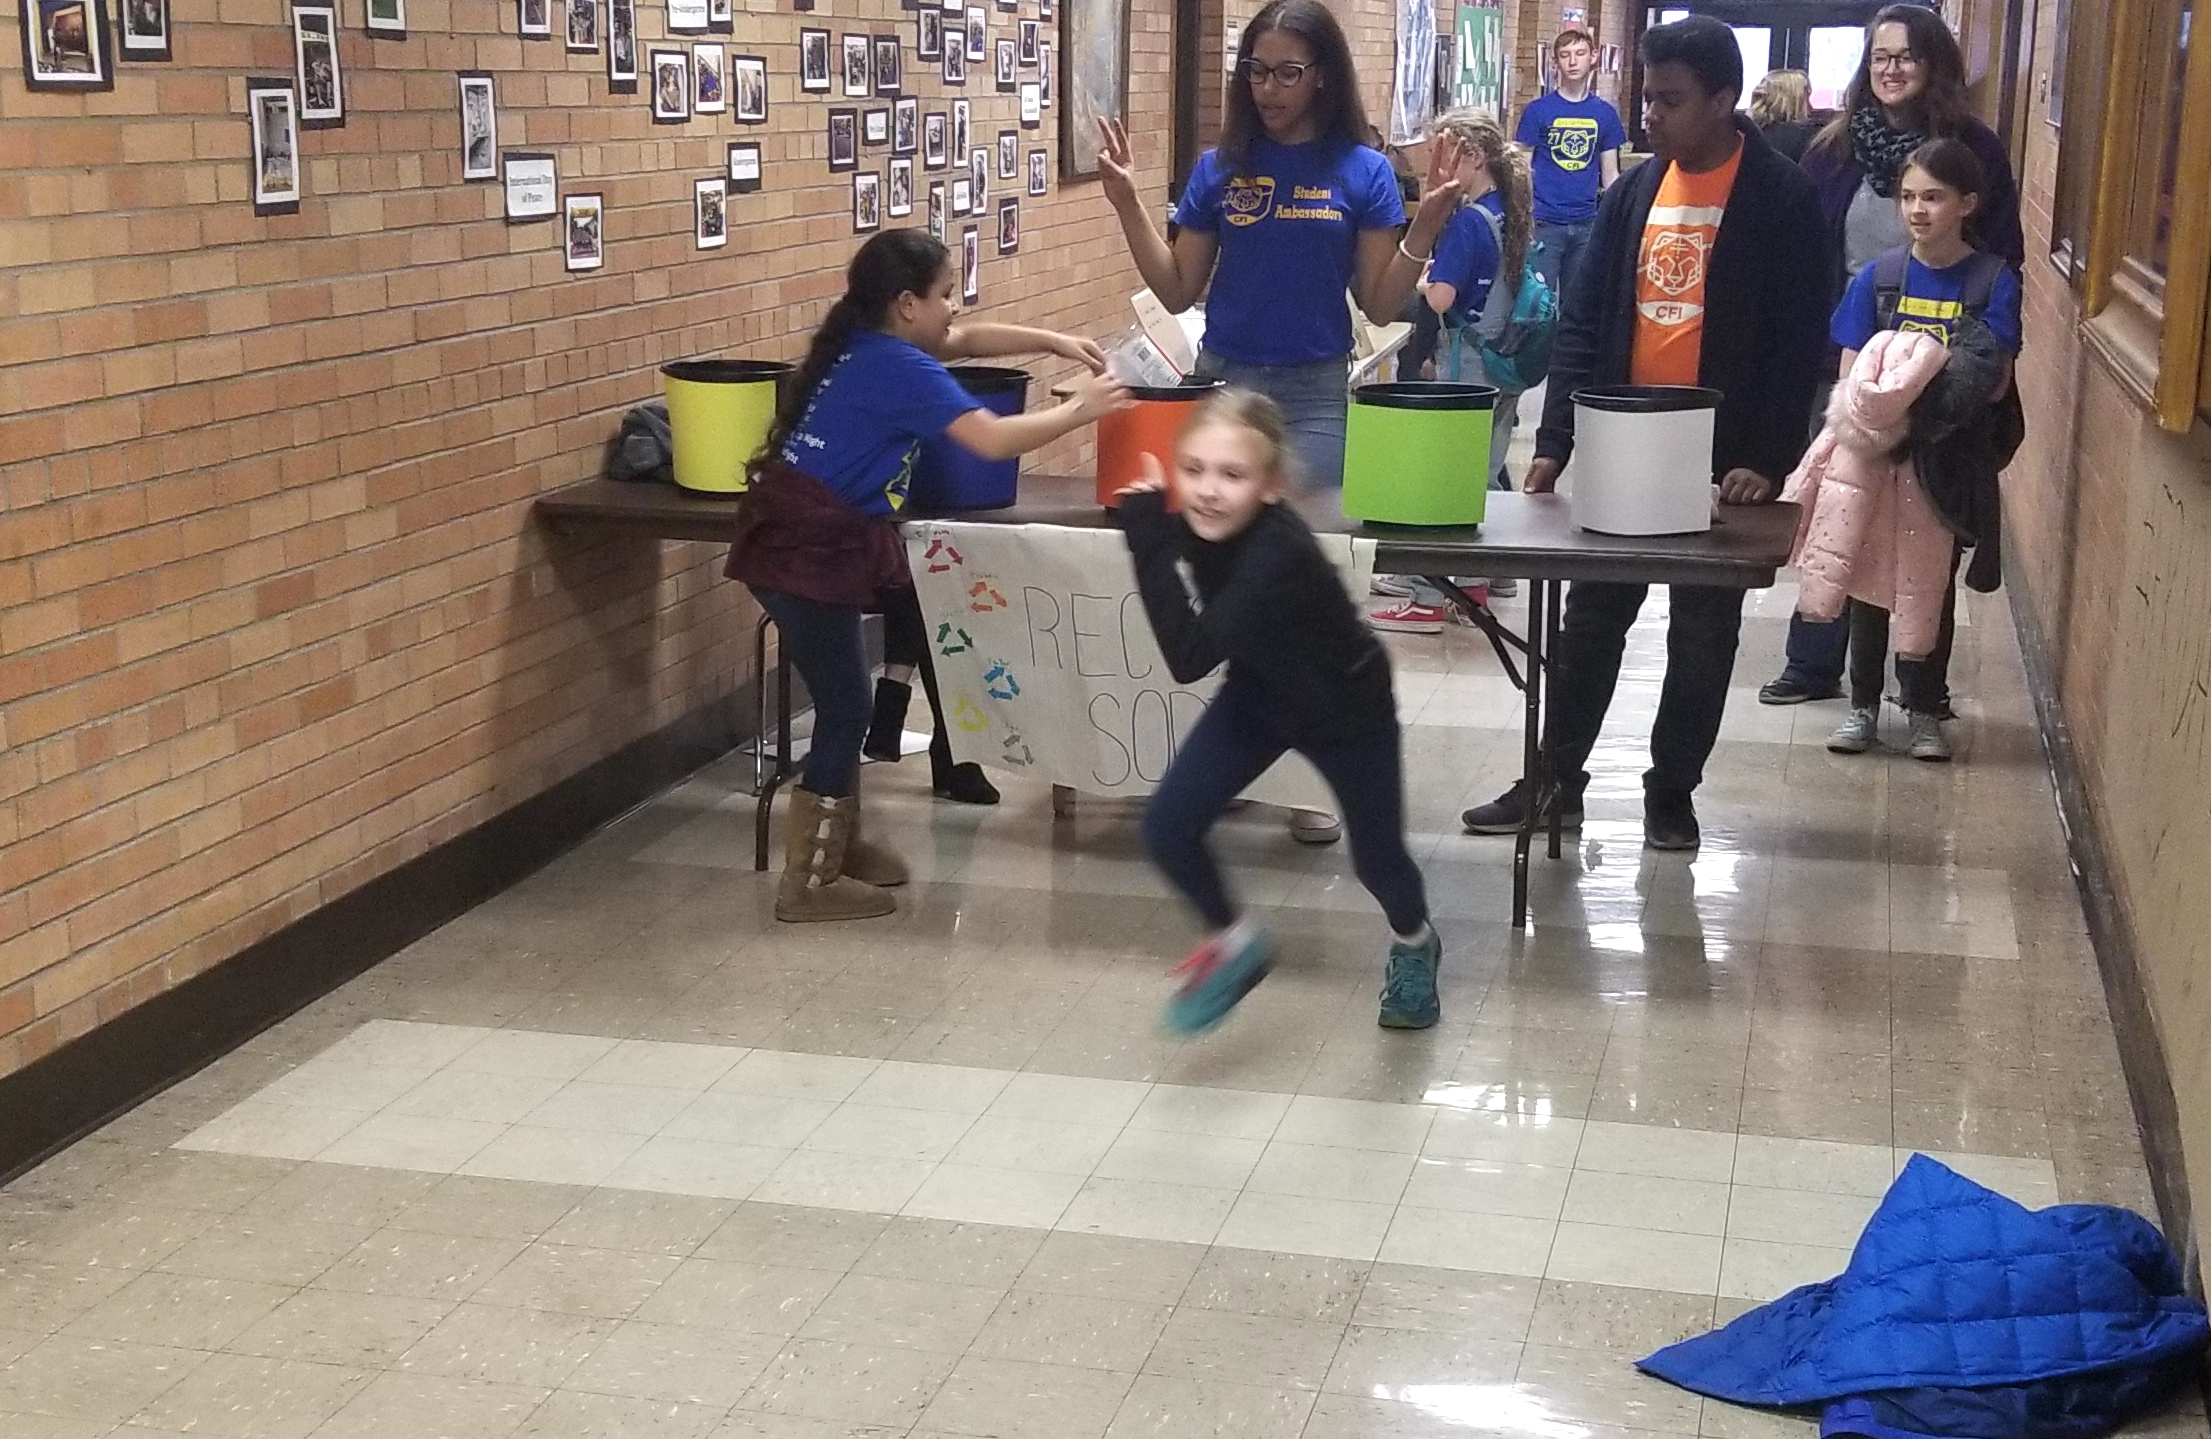 A race to sort recyclables!